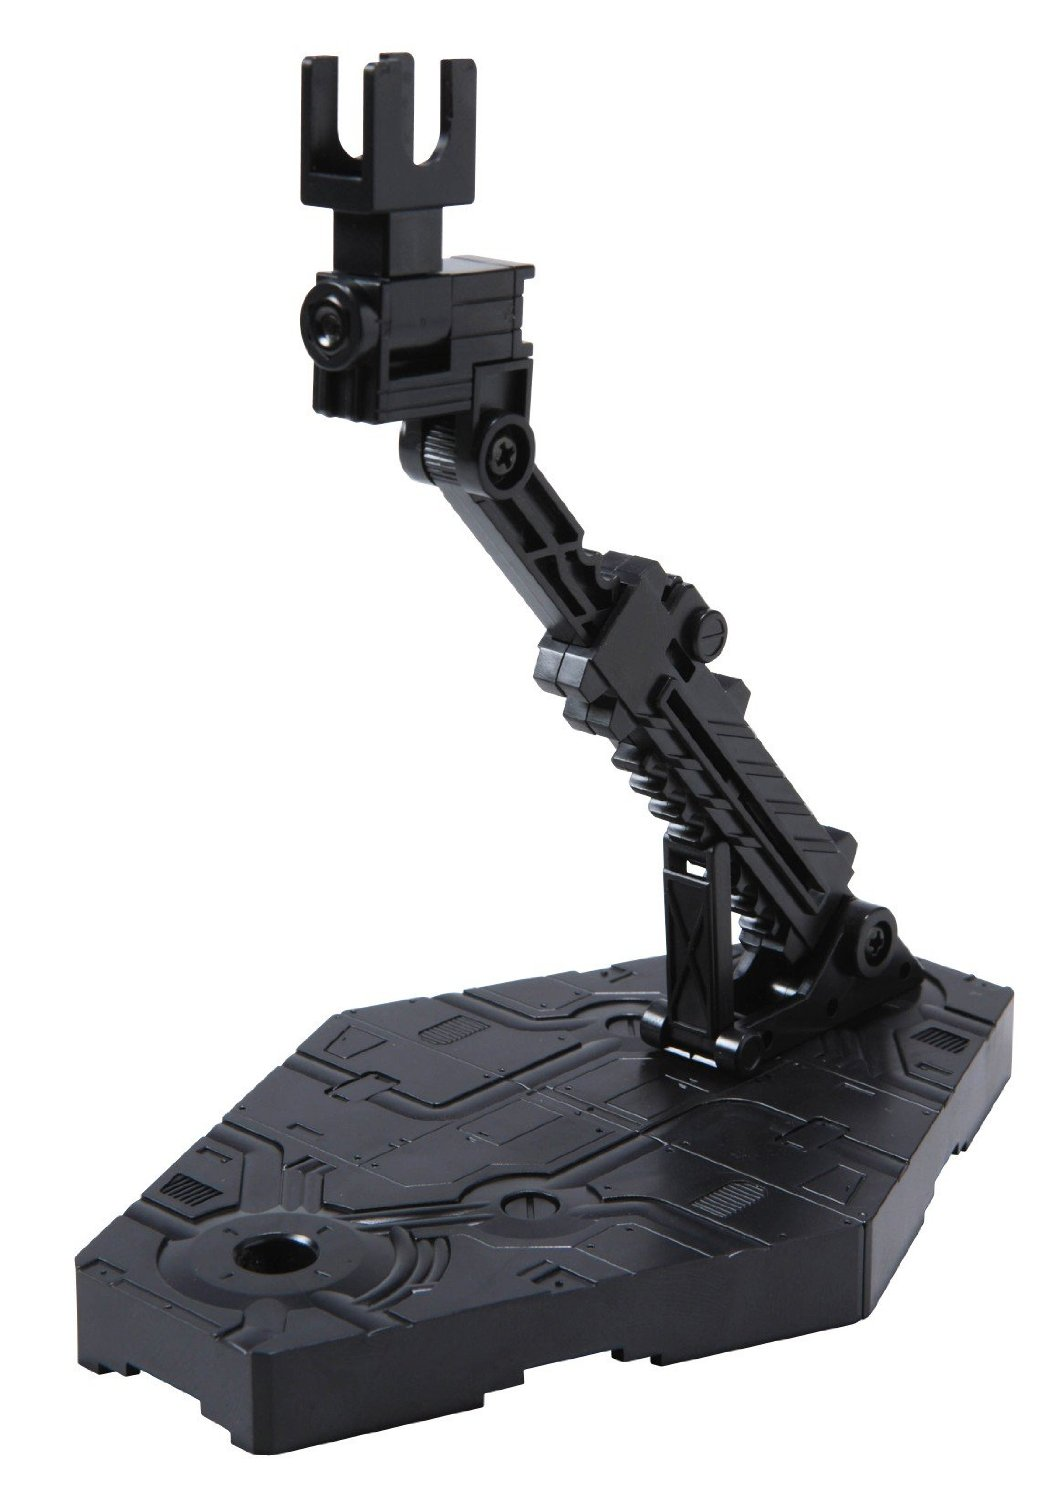 Bandai Hobby Action Base 2 Display Stand 1/144 Black